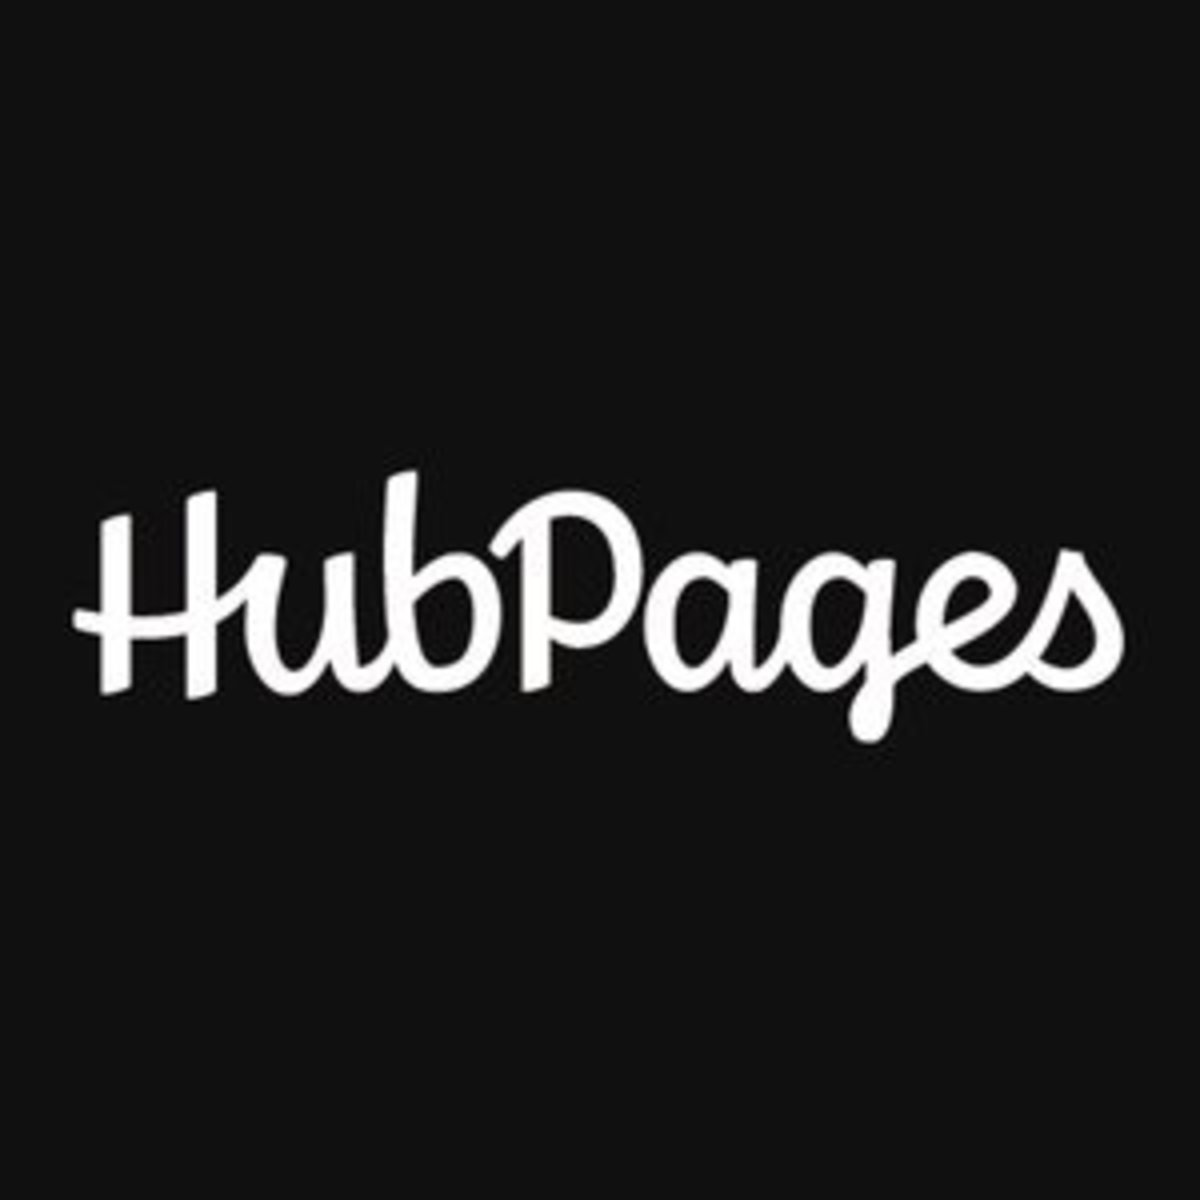 10 Ways to Ensure Your Hubpages Article Gets Featured